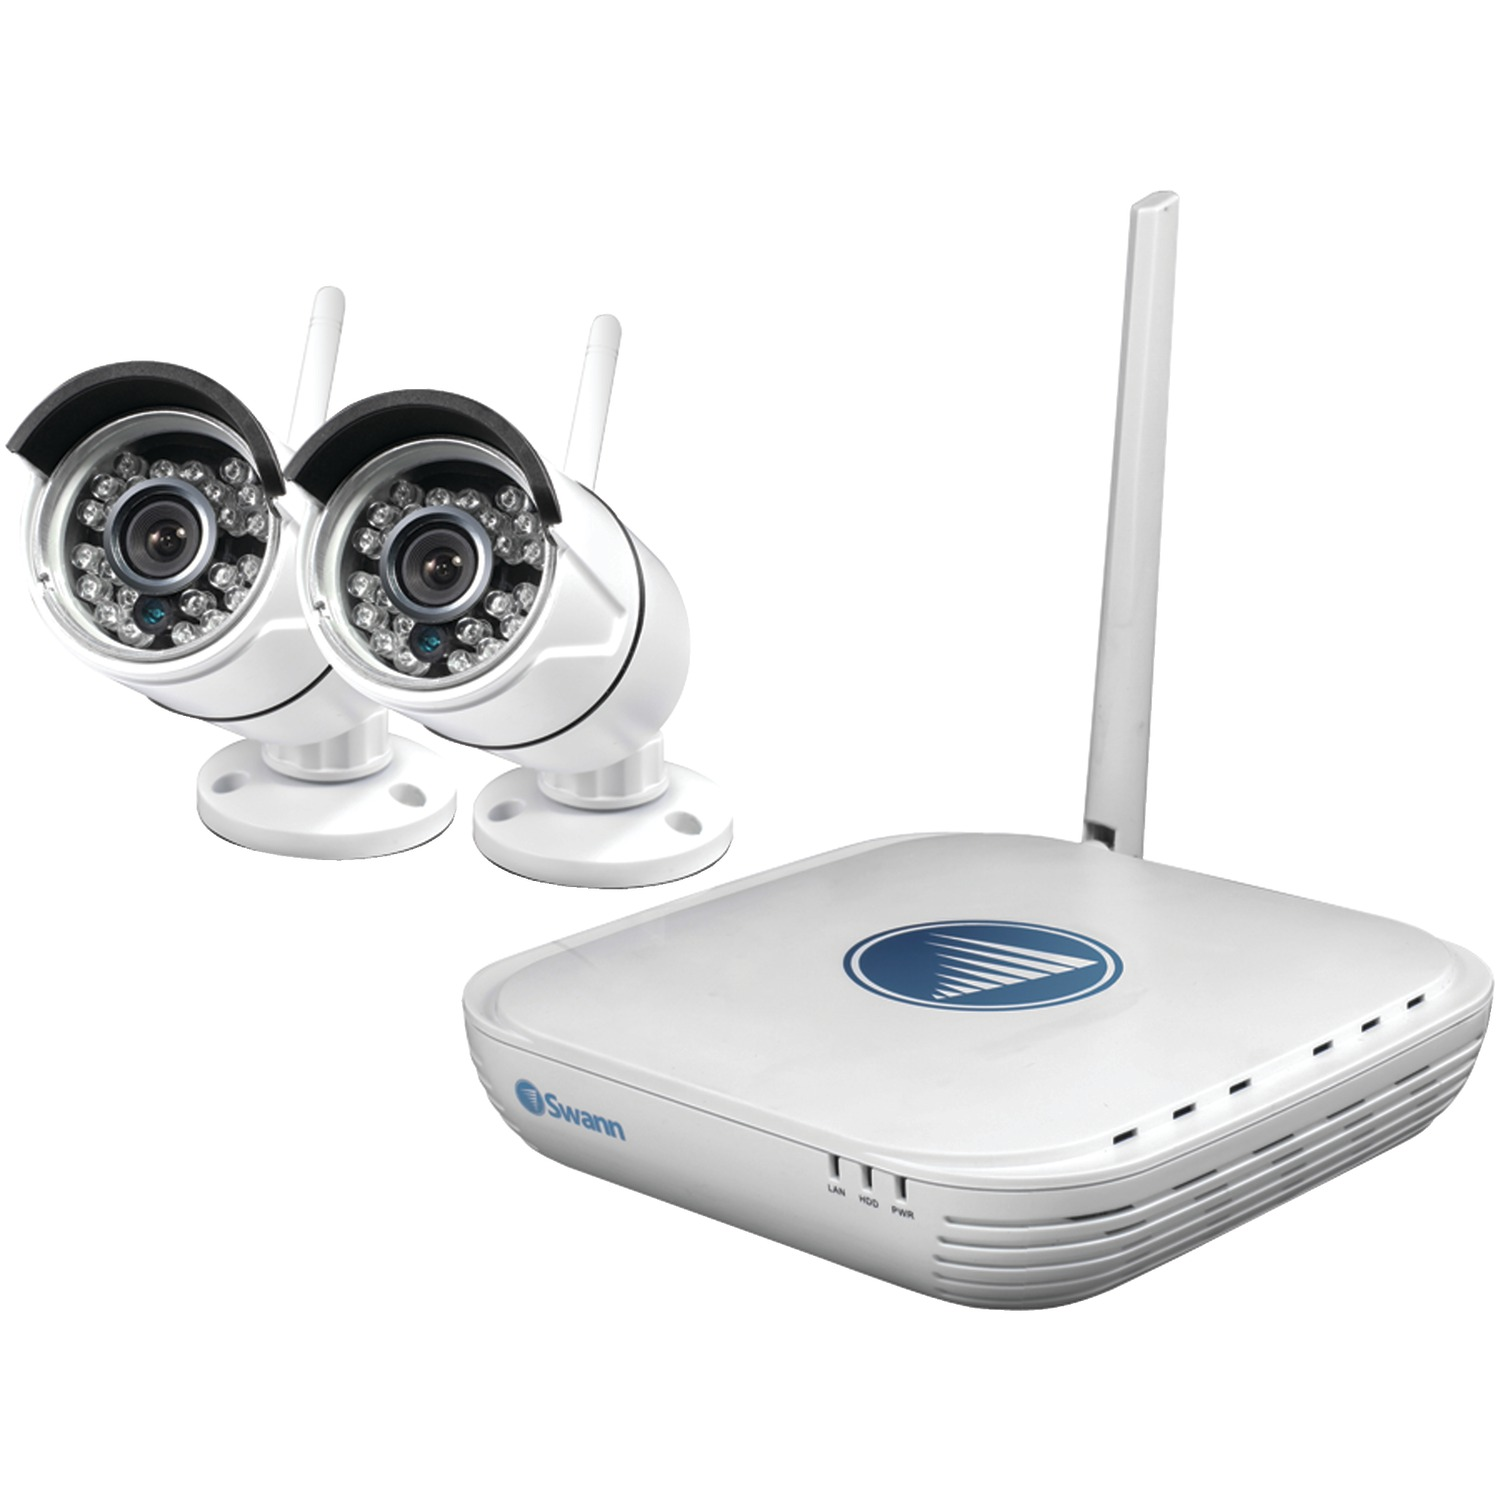 Swann SWNVK-460KH2-US 4-Channel Wi-Fi Security System With 2 Wireless IP Cameras